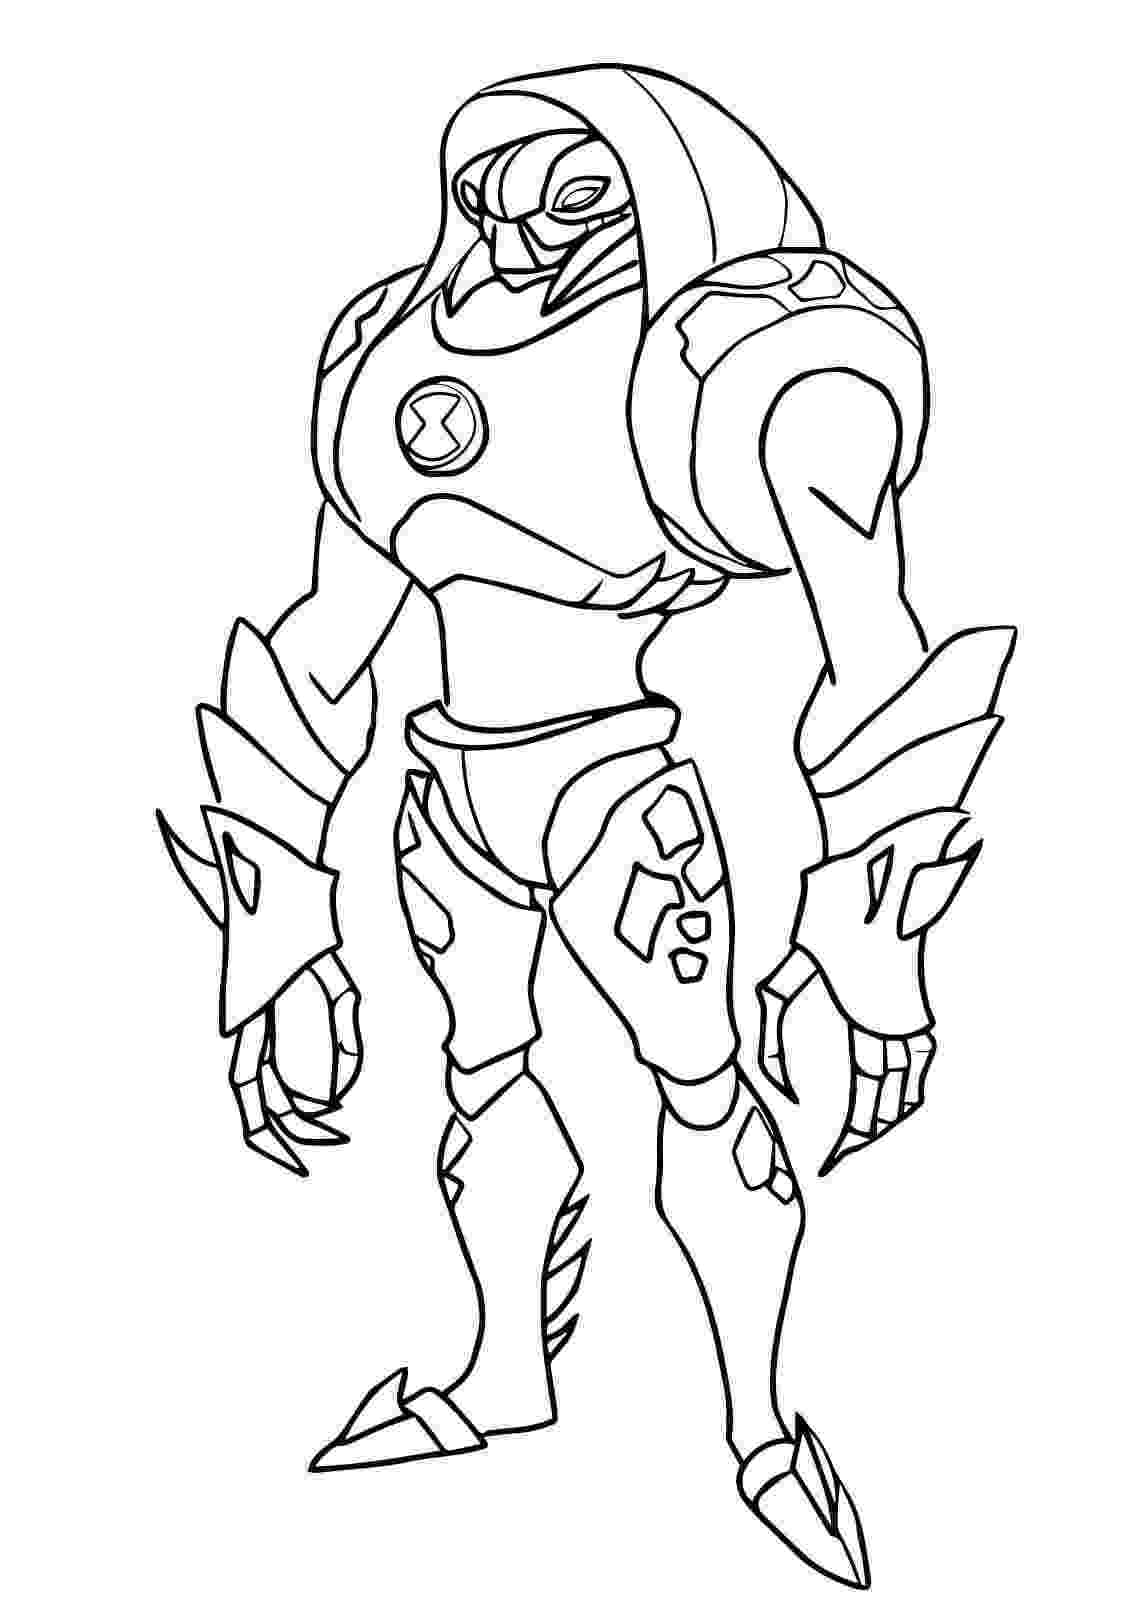 ben 10 ultimate alien coloring pages to print ben 10 ultimate alien coloring pages to download and print pages ultimate coloring alien print ben to 10